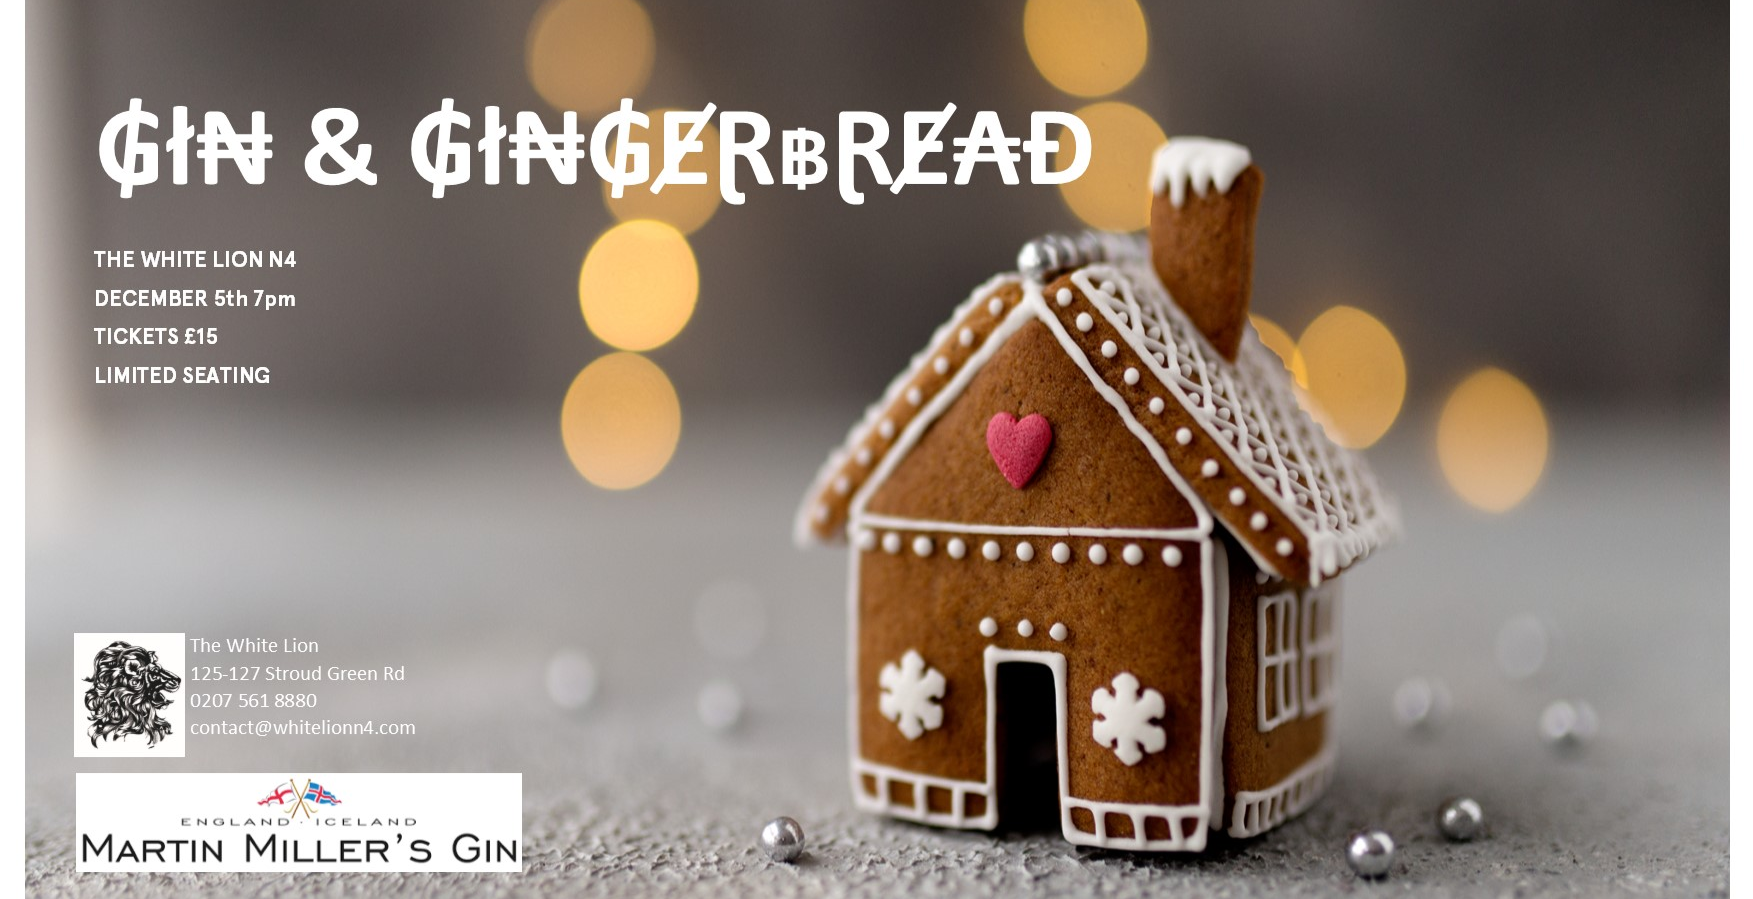 Gin & Gingerbread!